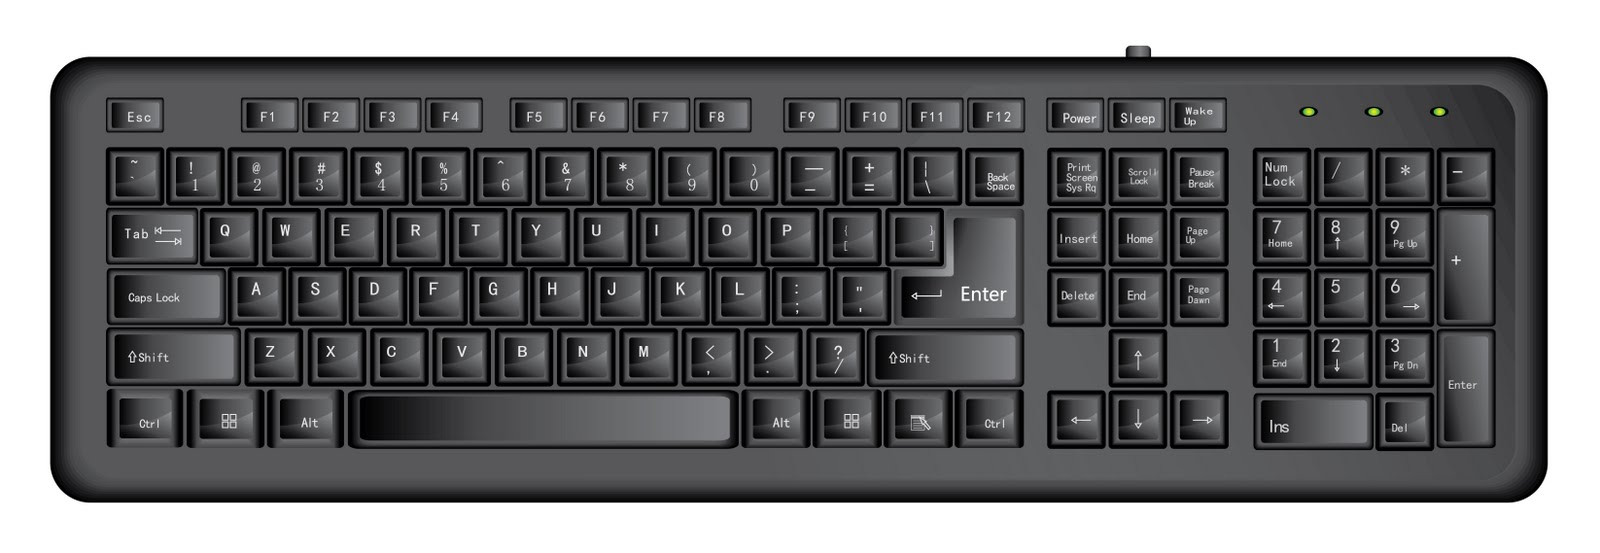 Free computer keyboard clipart png royalty free library Free Computer Keyboard Clipart Image - 16363, Computer Keyboard ... png royalty free library